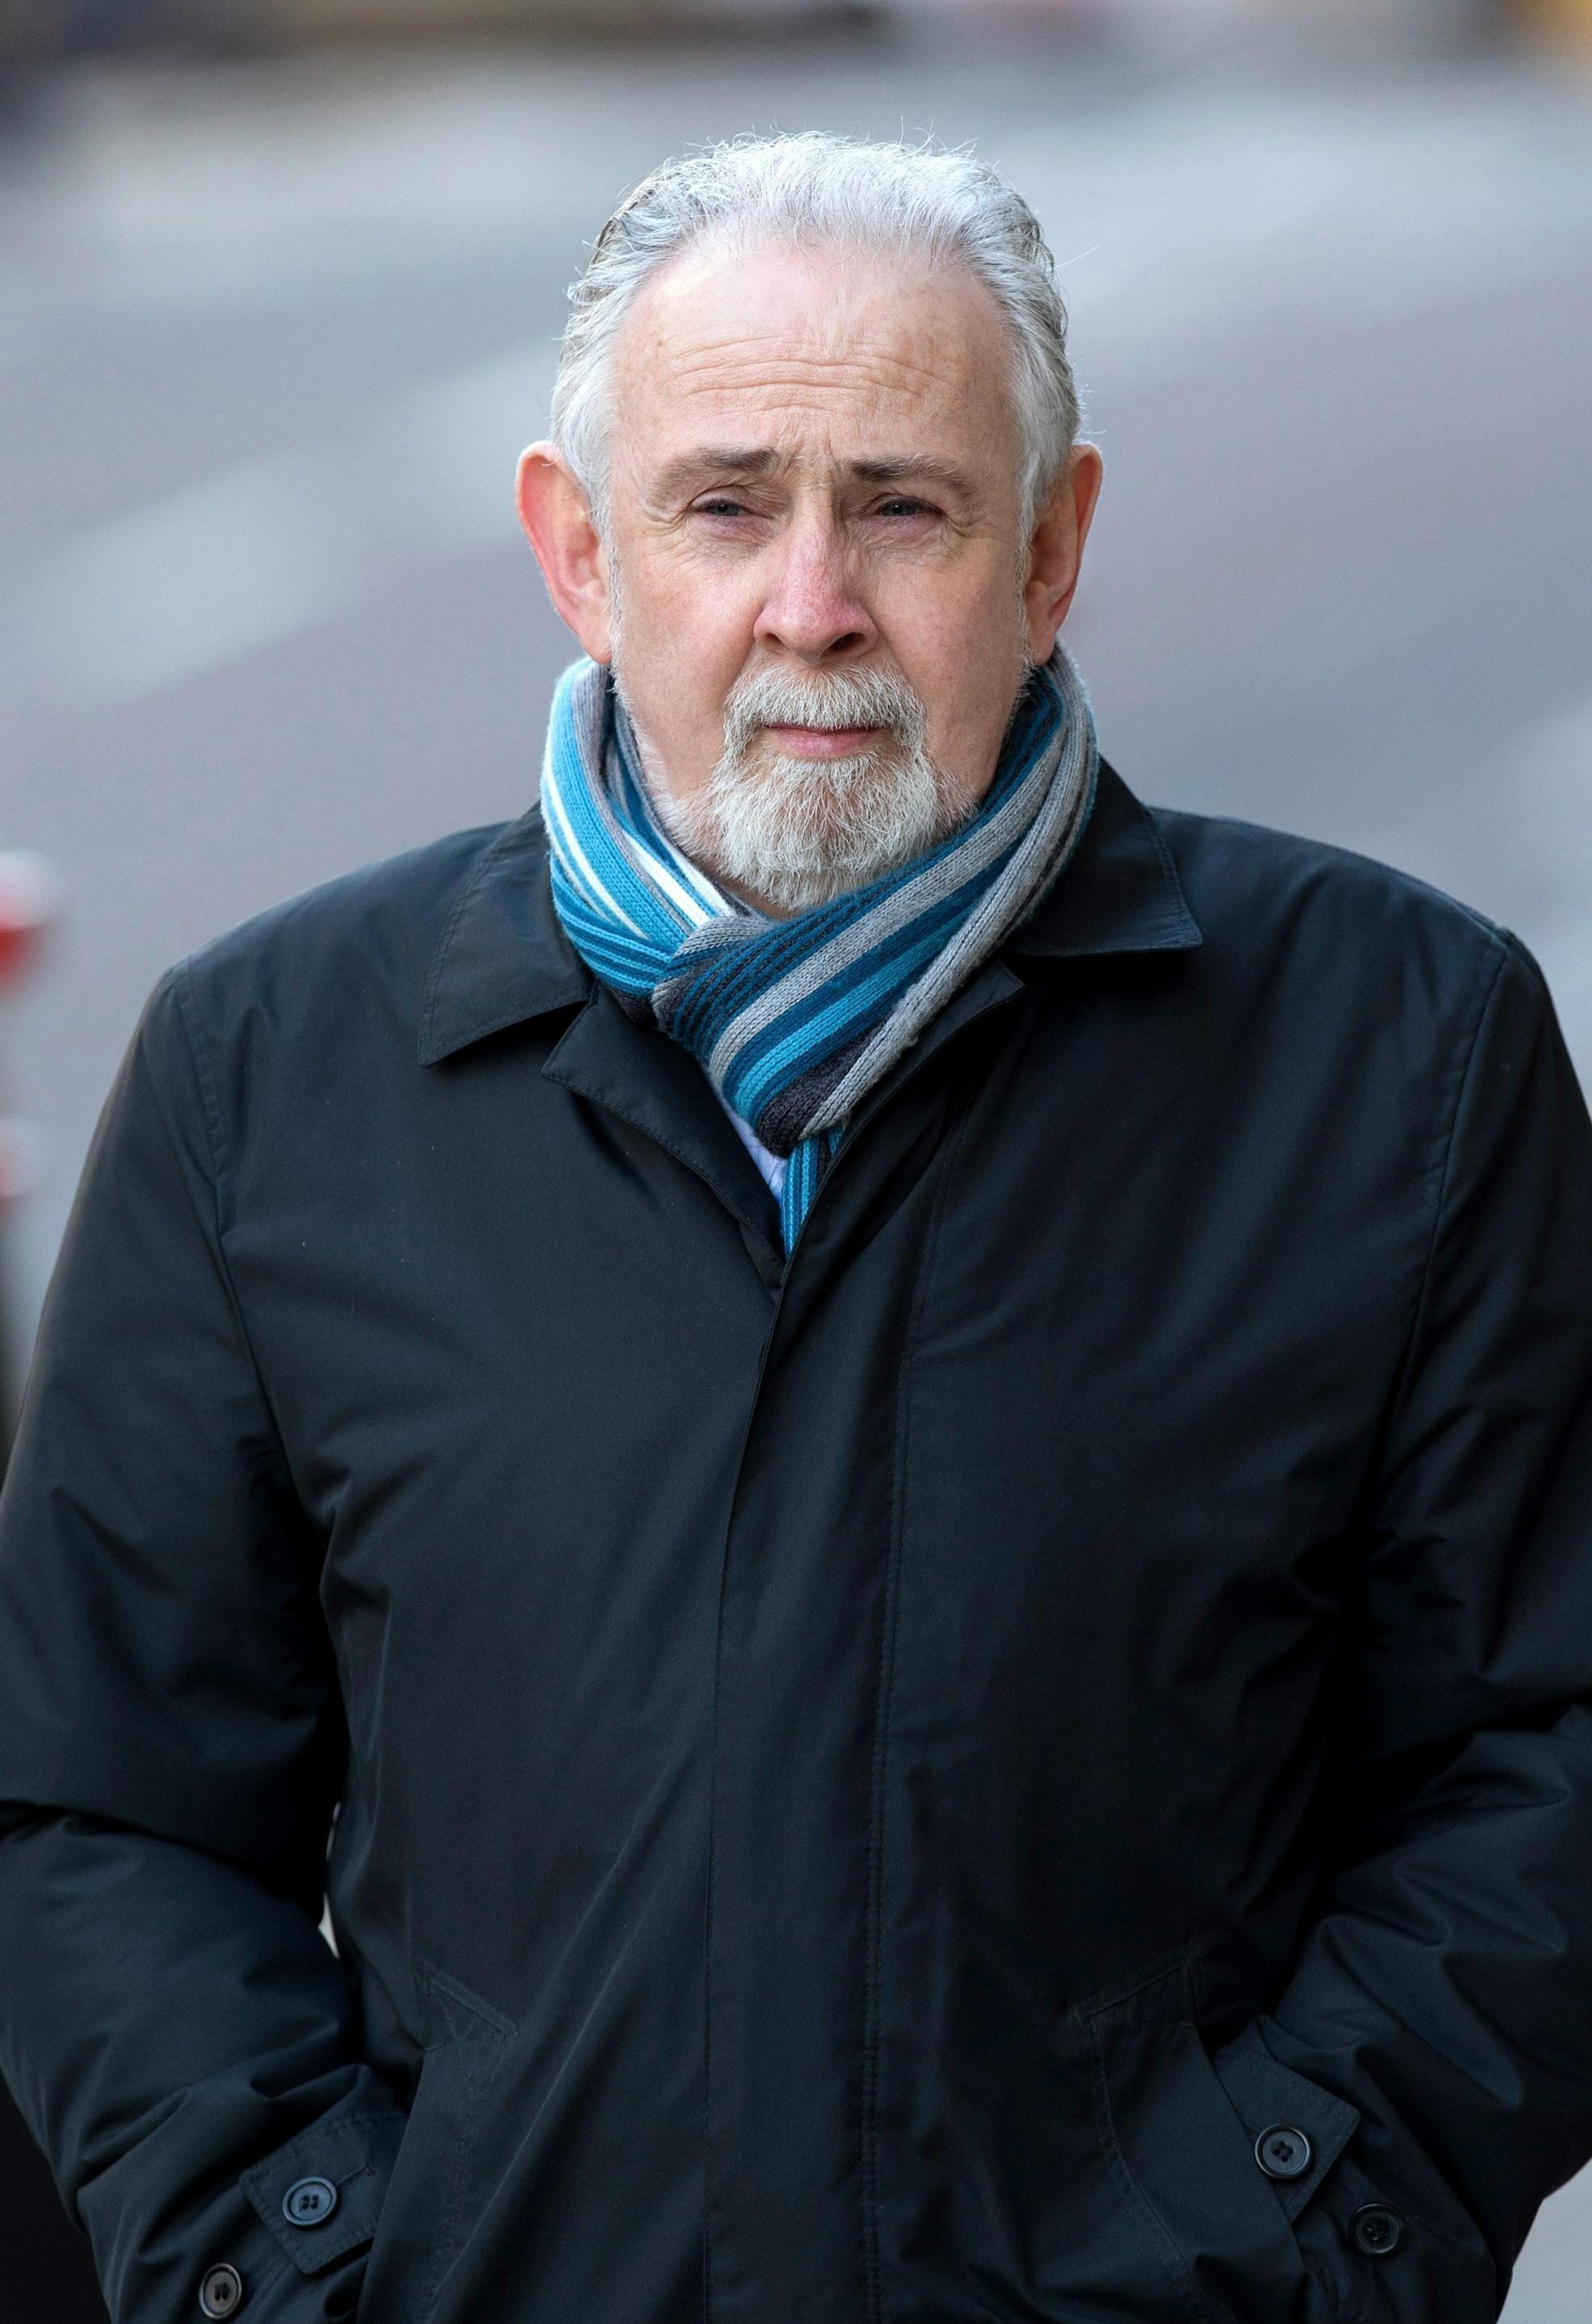 No more excuses for convicted IRA man John Downey as he finally faces justice